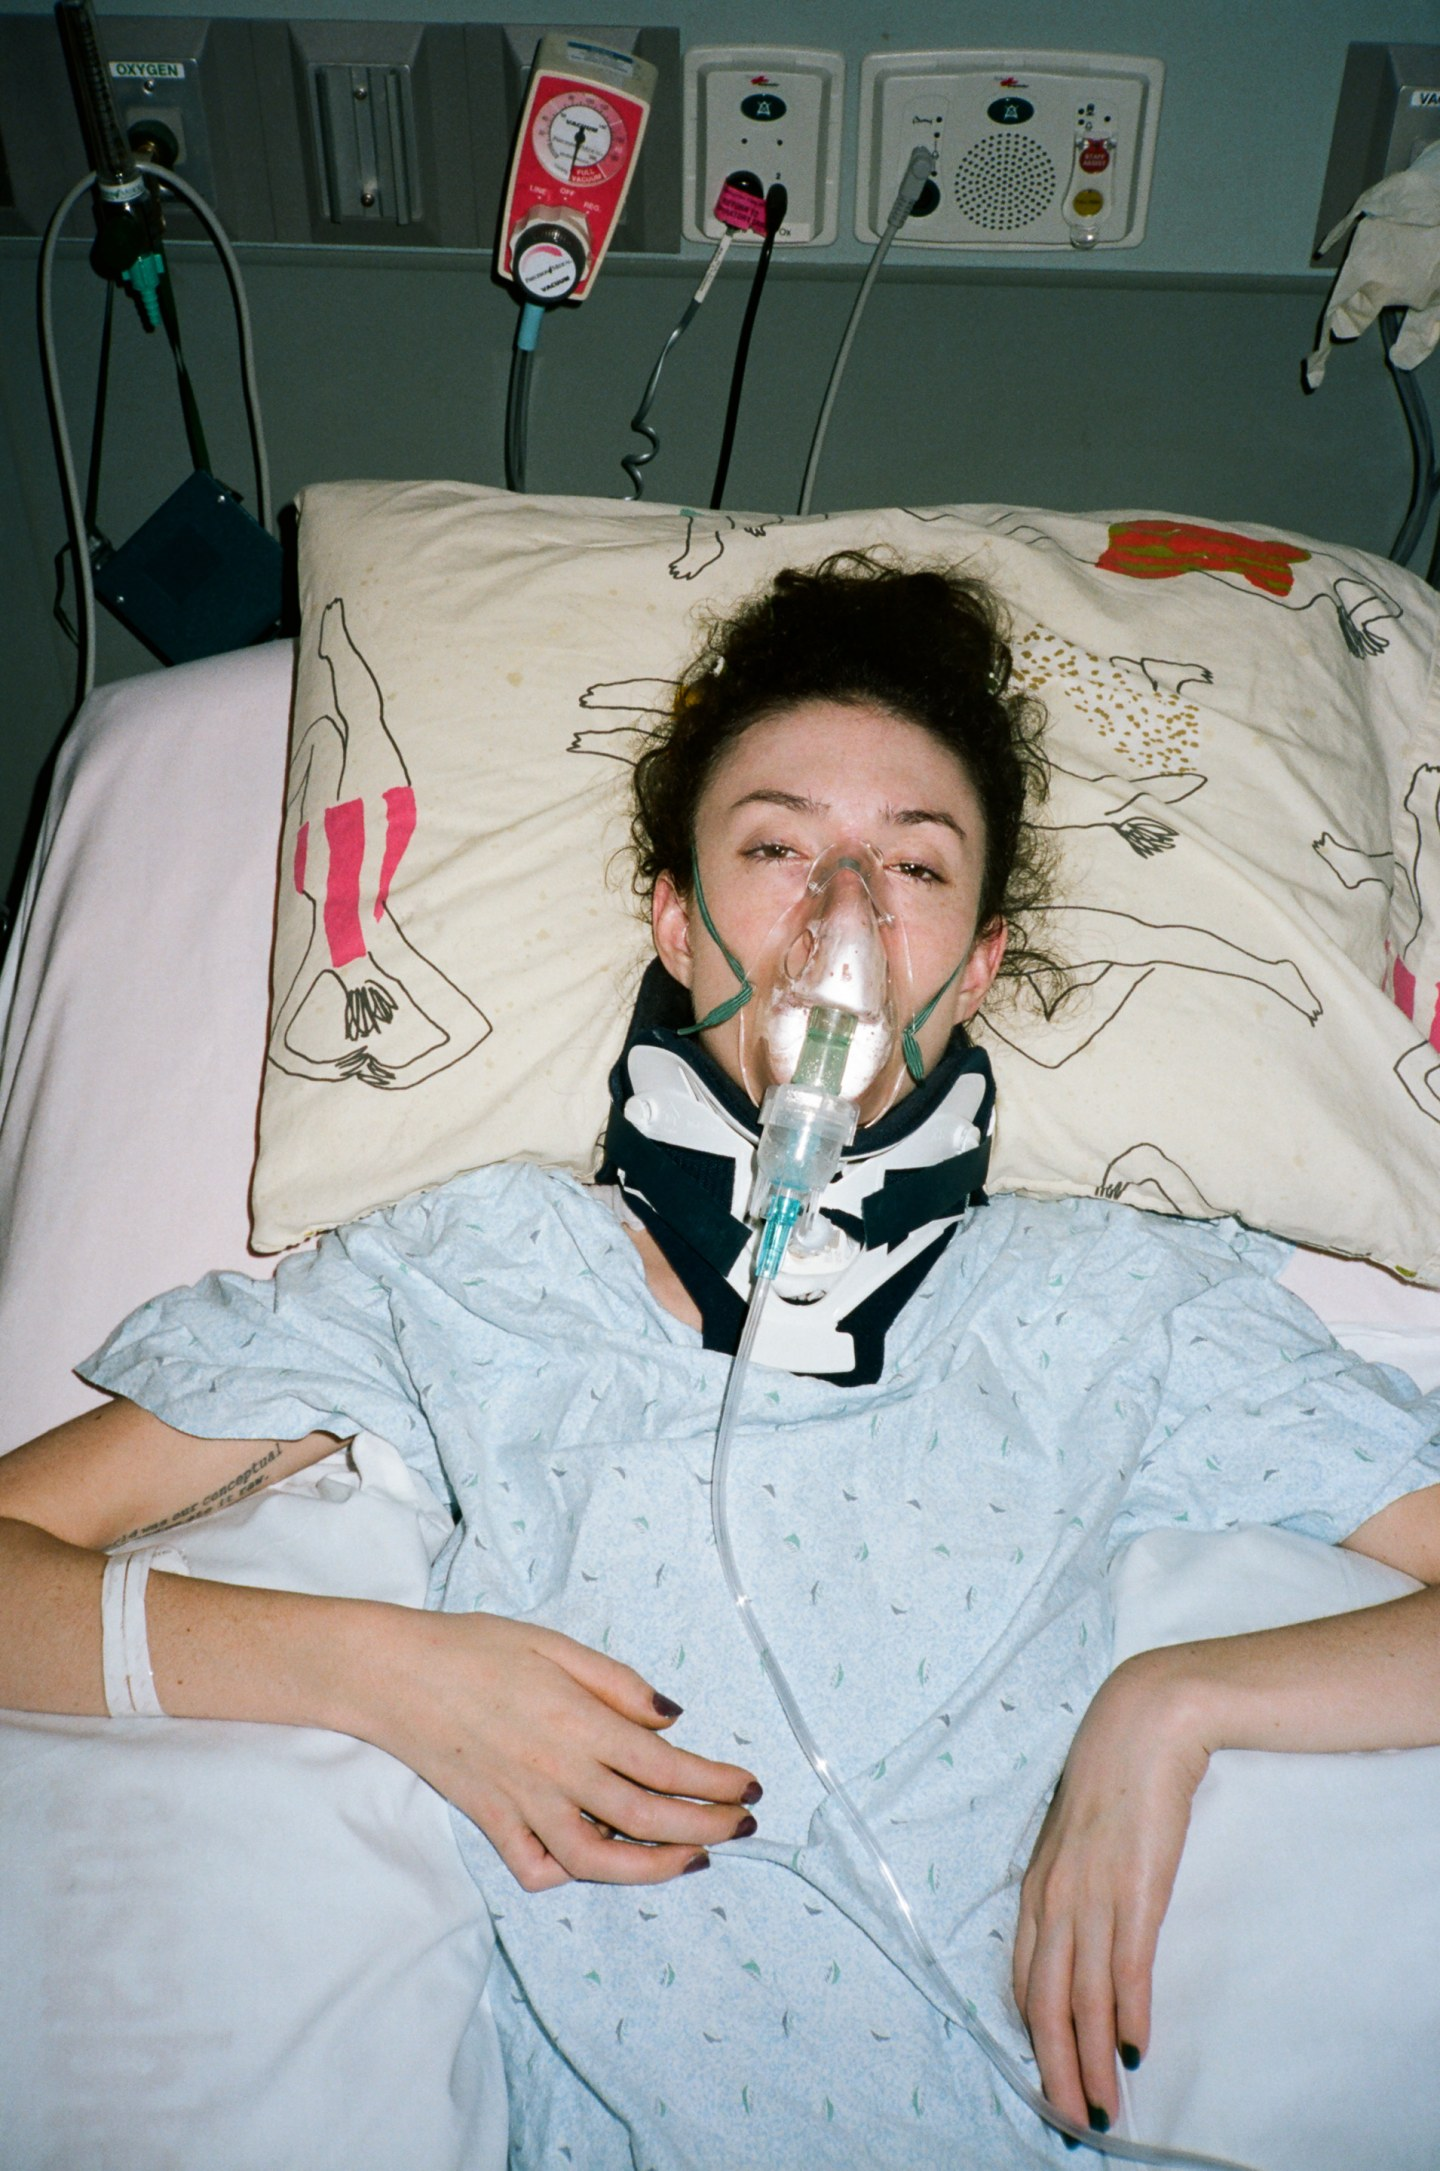 A Freak Accident Paralyzed My Best Friend. Now She's Using Art To Get Her Life Back.